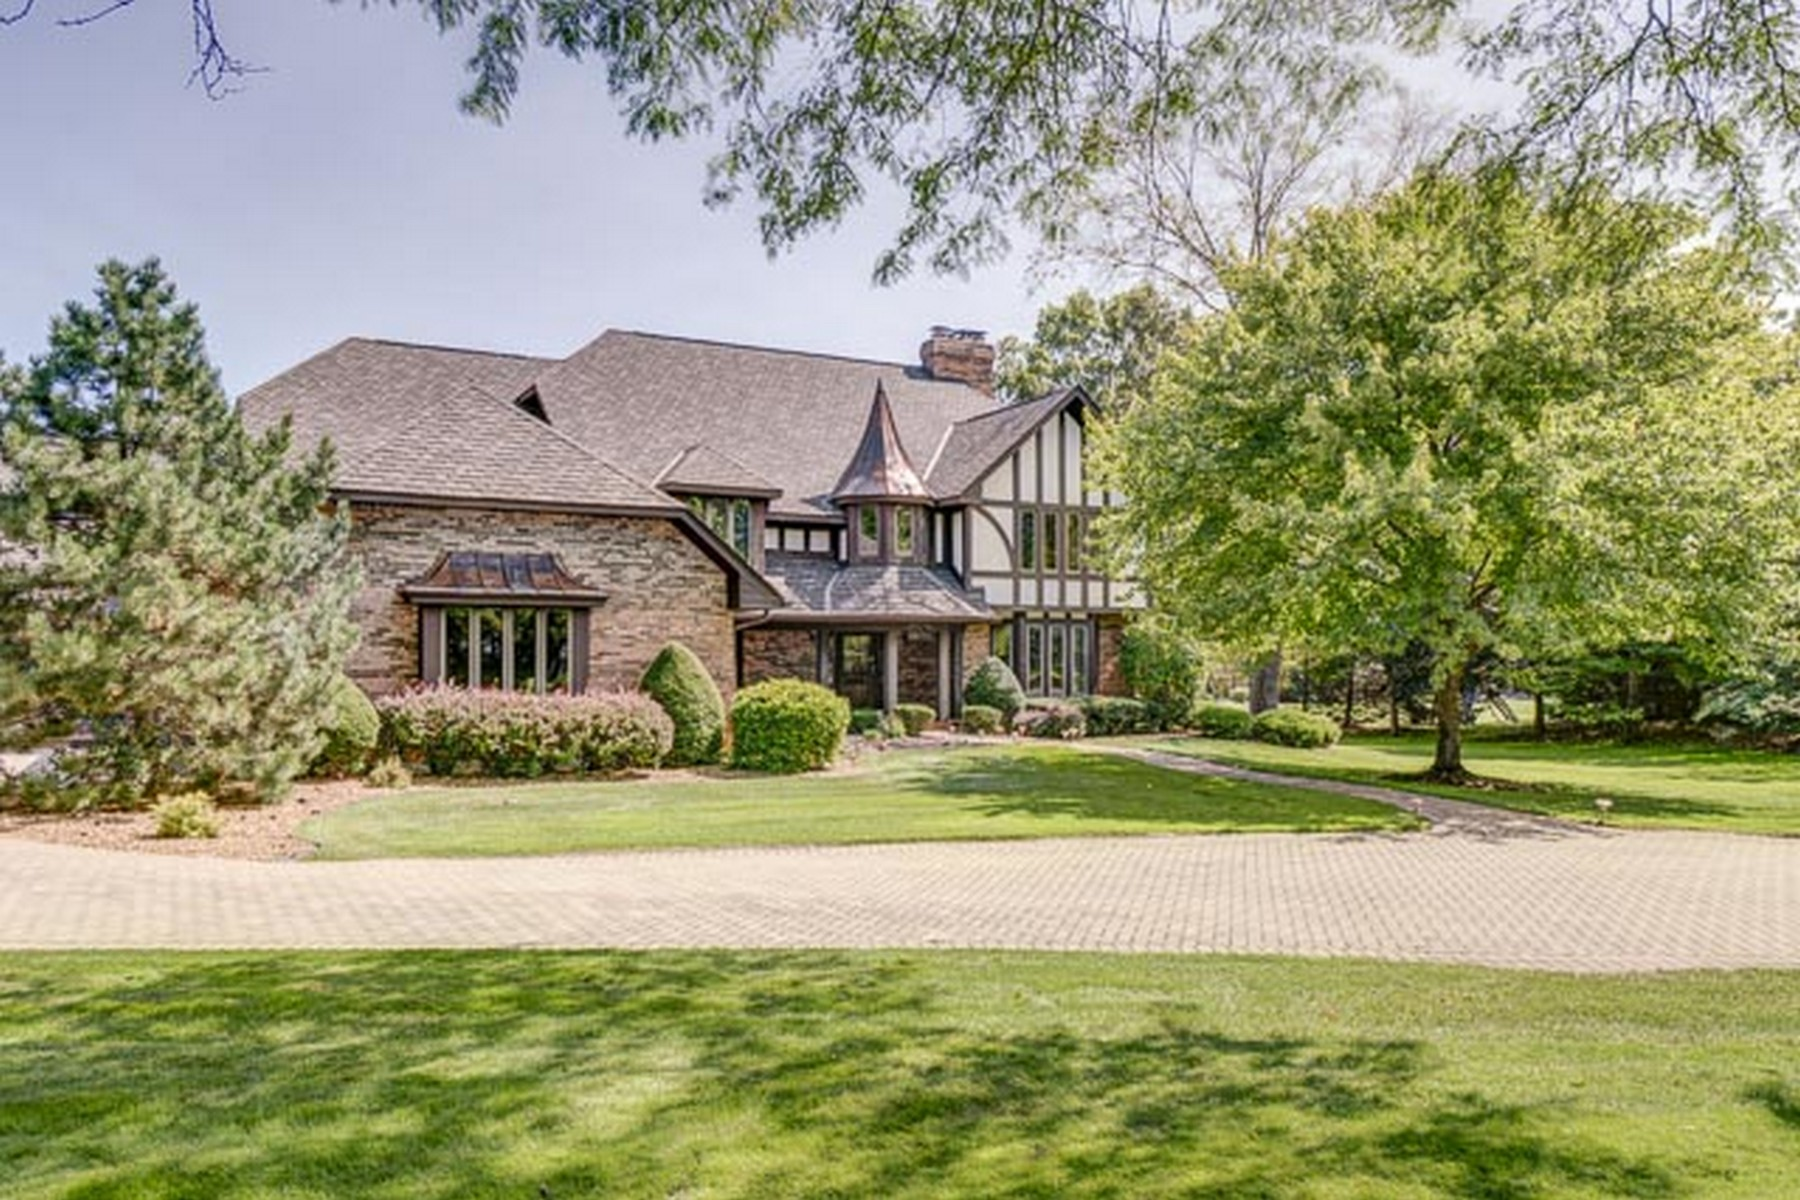 Maison unifamiliale pour l Vente à Tranquil Five Bedroom Home 11 Corey Drive, South Barrington, Illinois, 60010 États-Unis